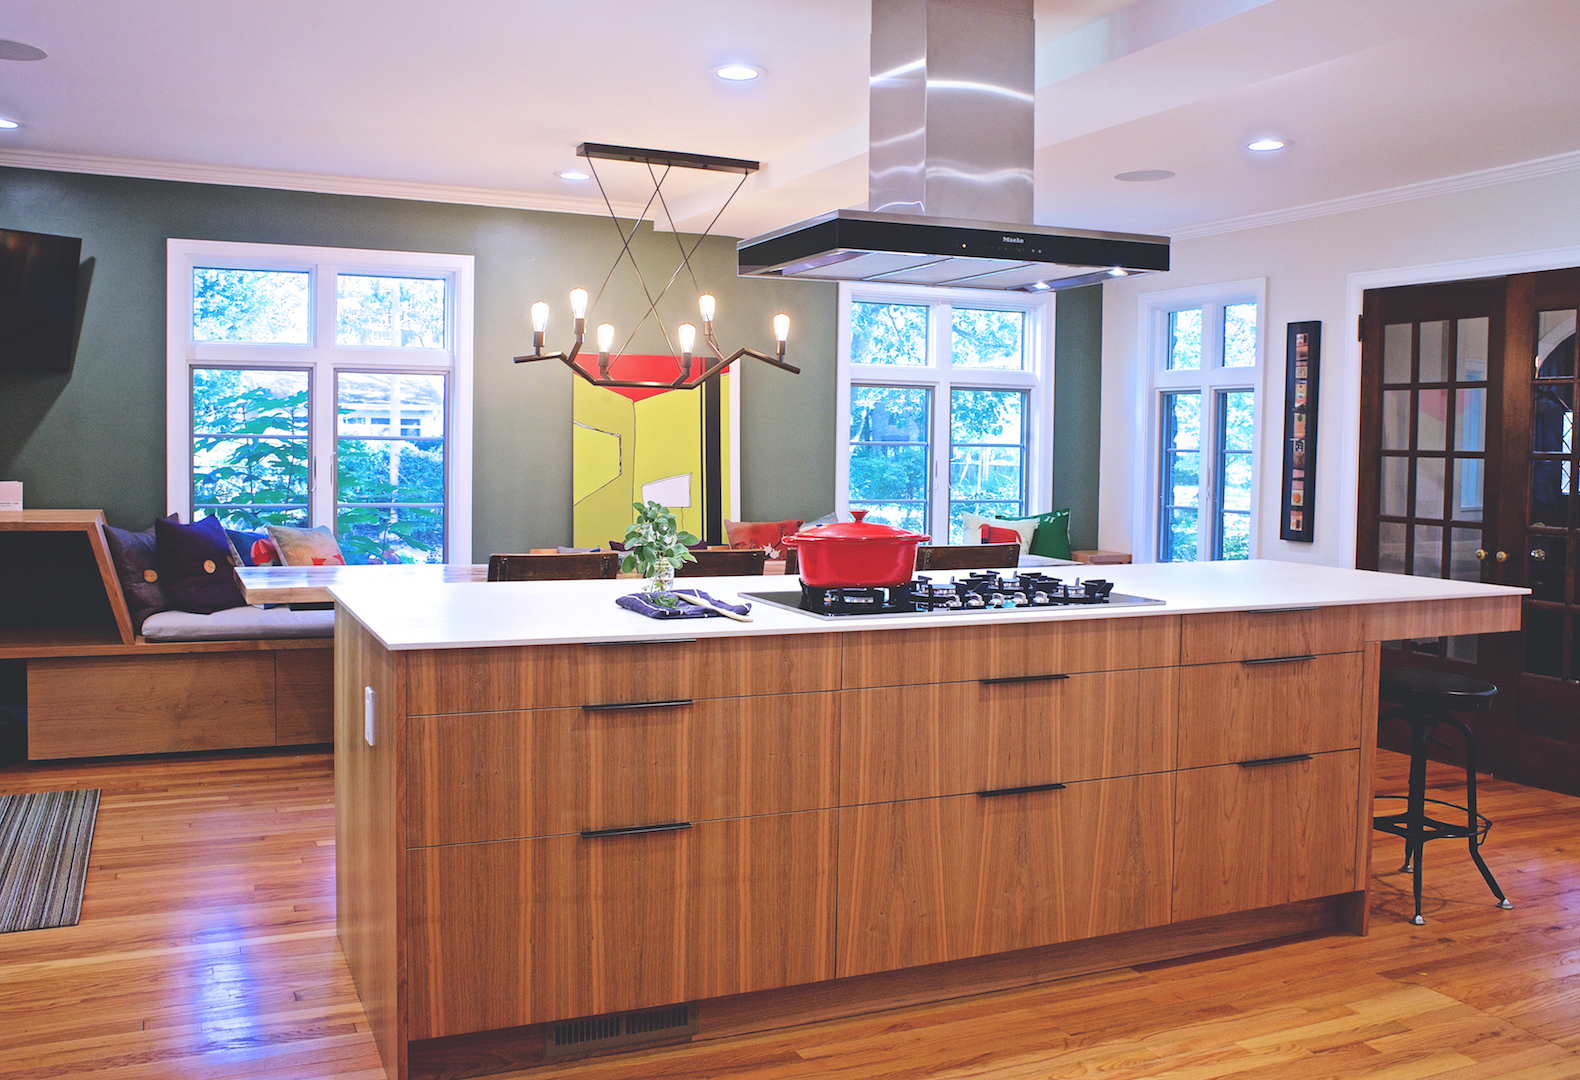 norden-at-home-kitchen-design-fabrication-header.jpg